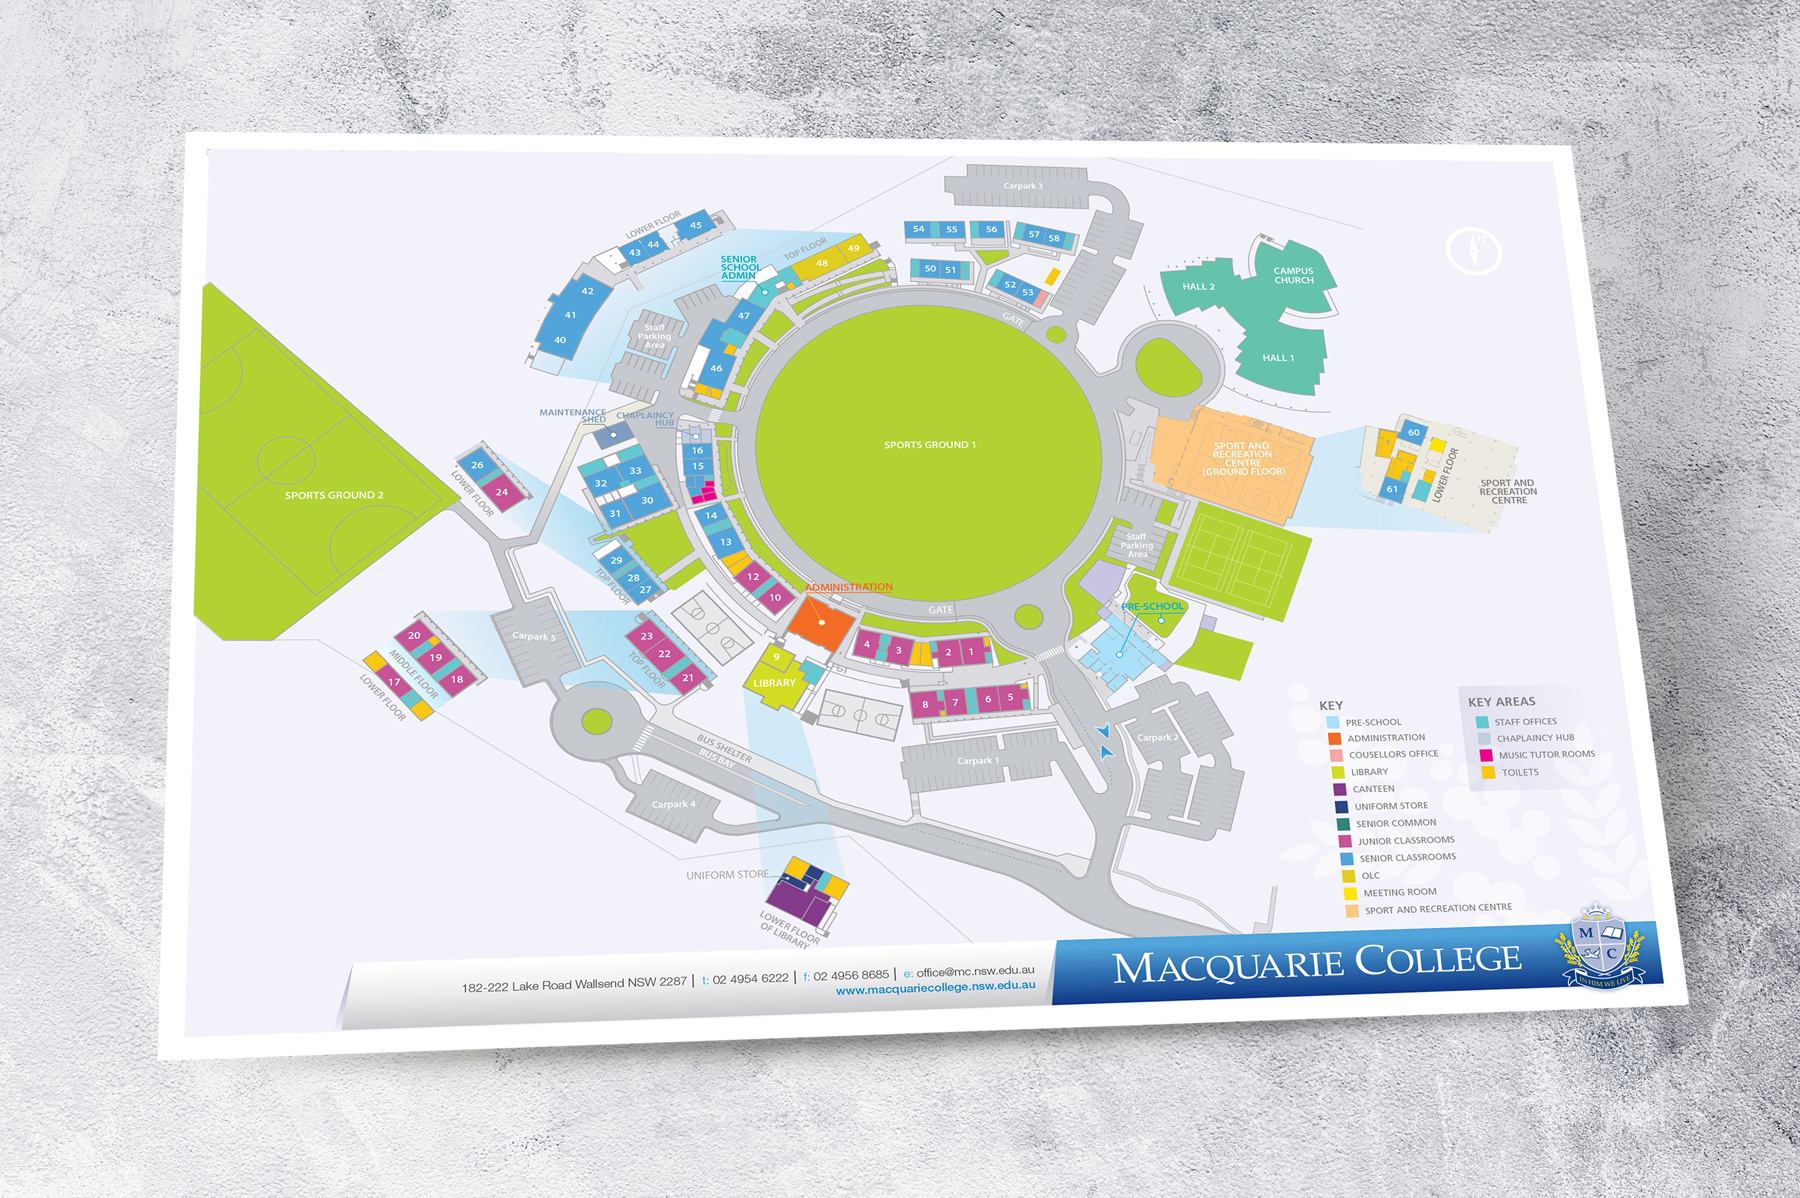 Macquarie College detailed site map illustration